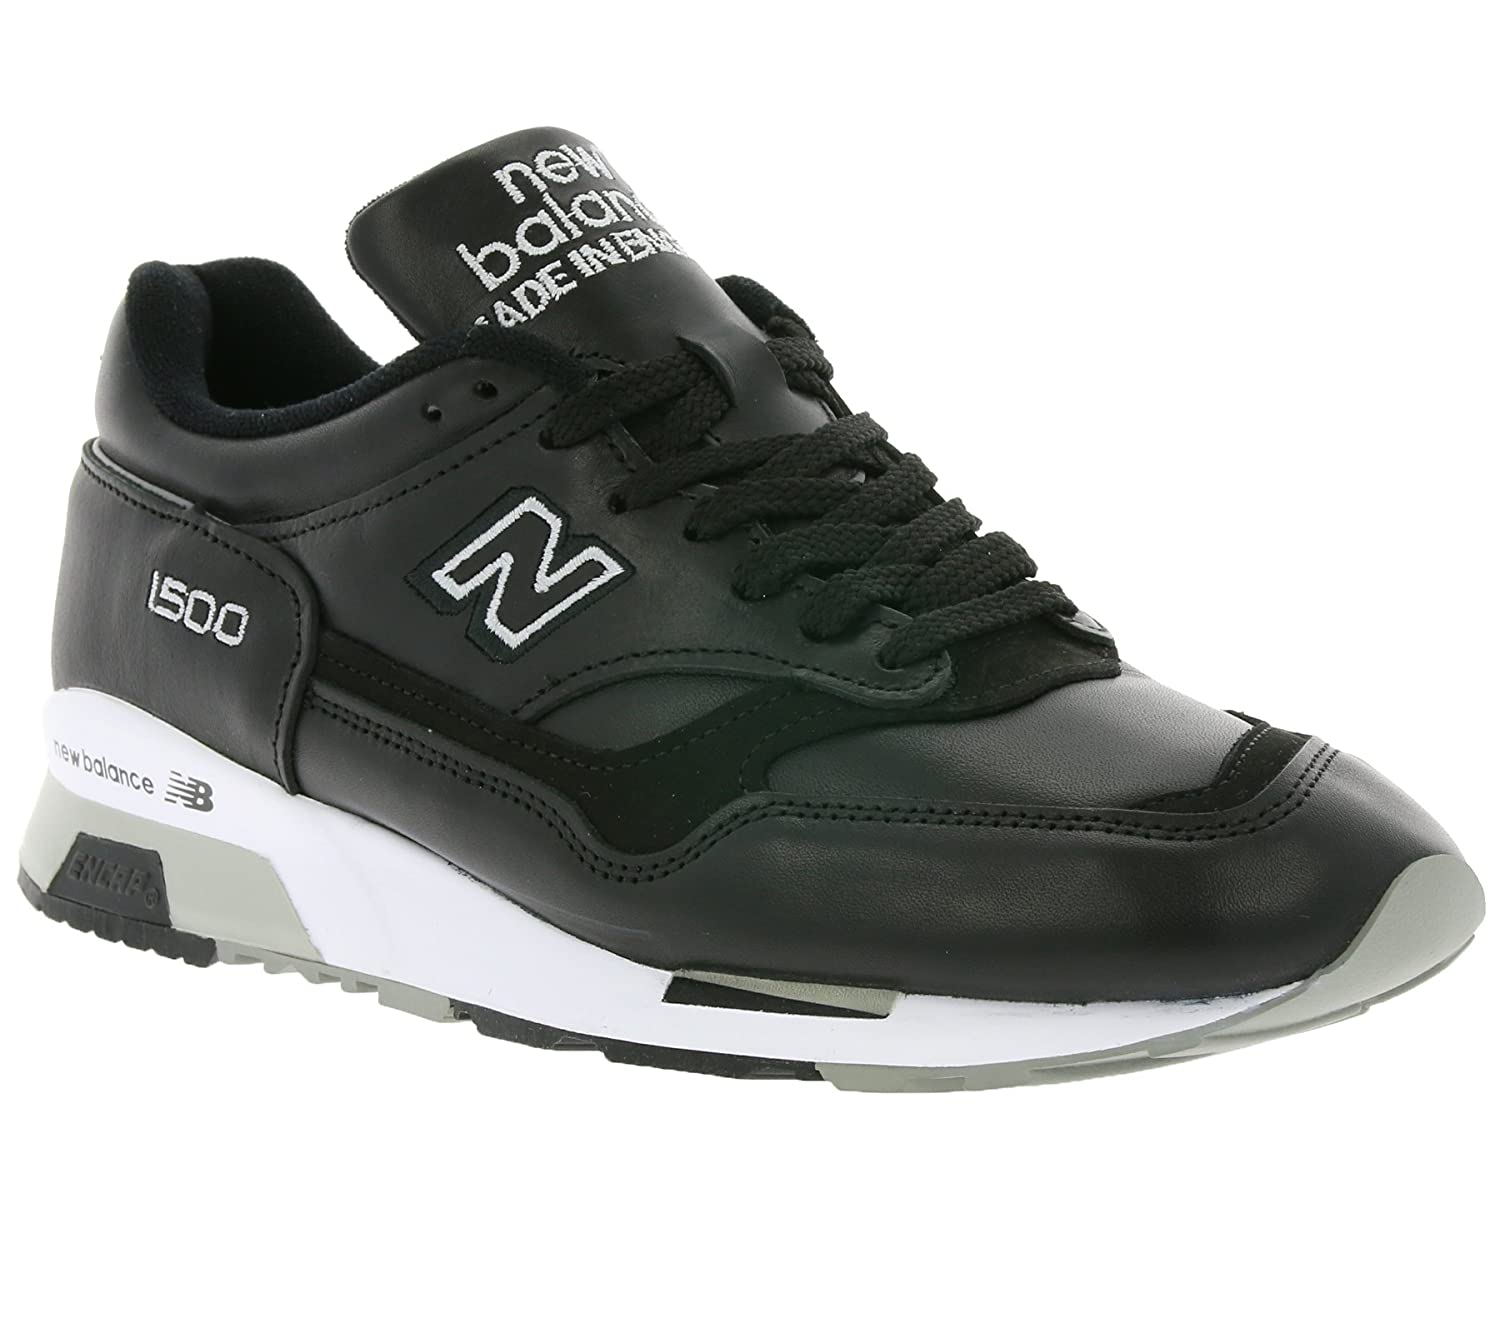 low priced d5c74 9a875 New Balance 1500 Made in UK Men's Real Leather Sneaker Black ...